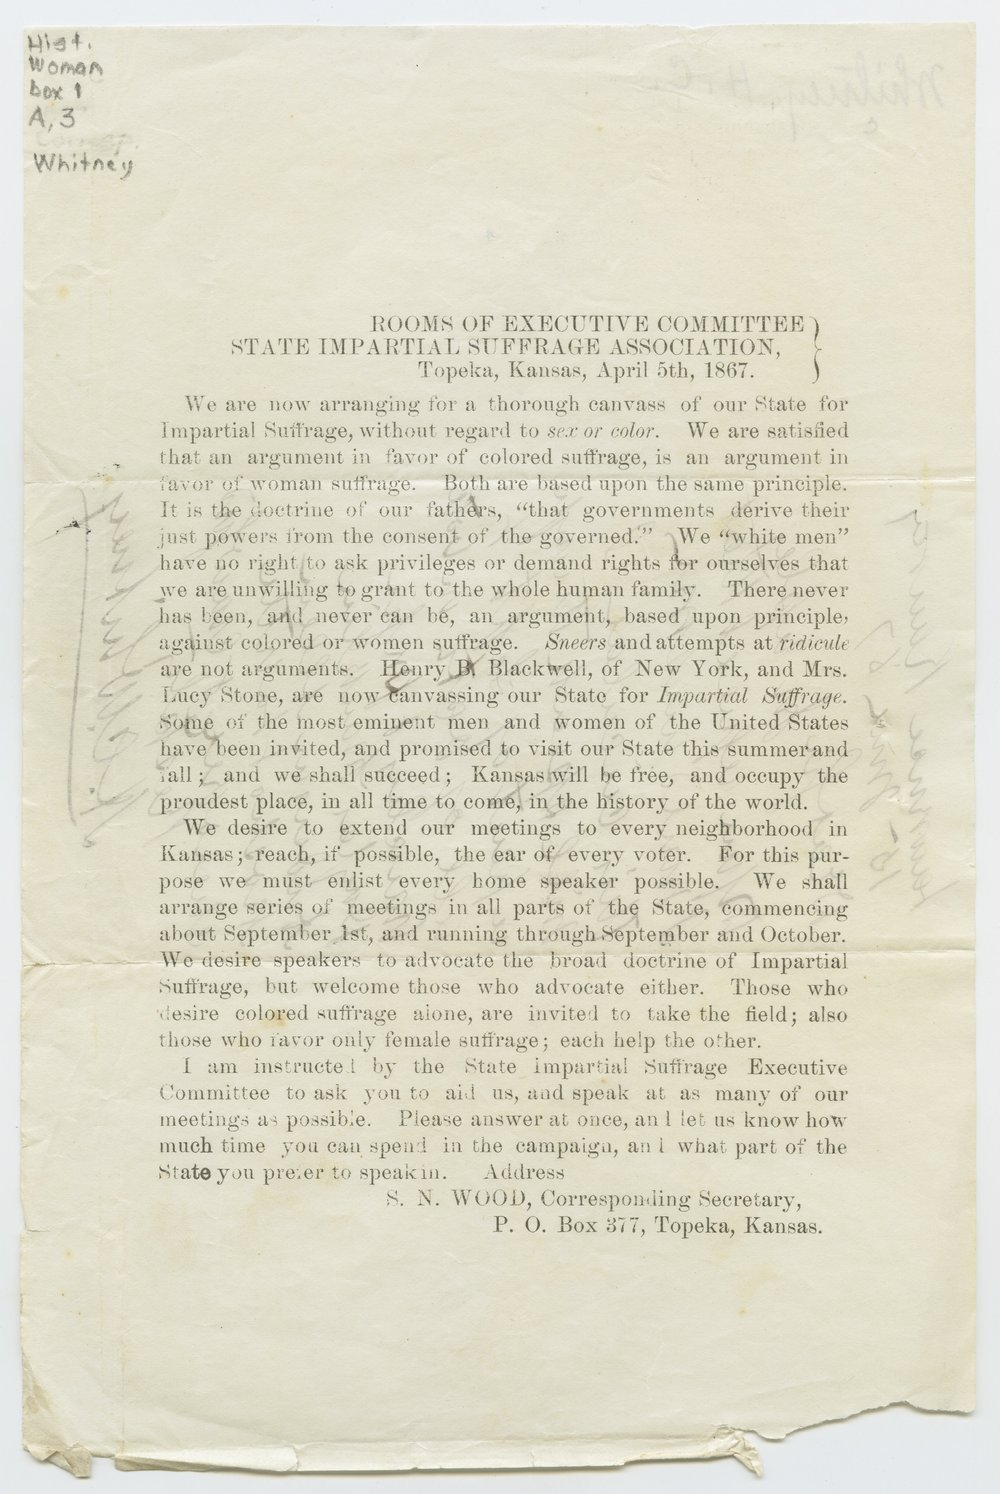 Circular of the State Impartial Suffrage Association - 1